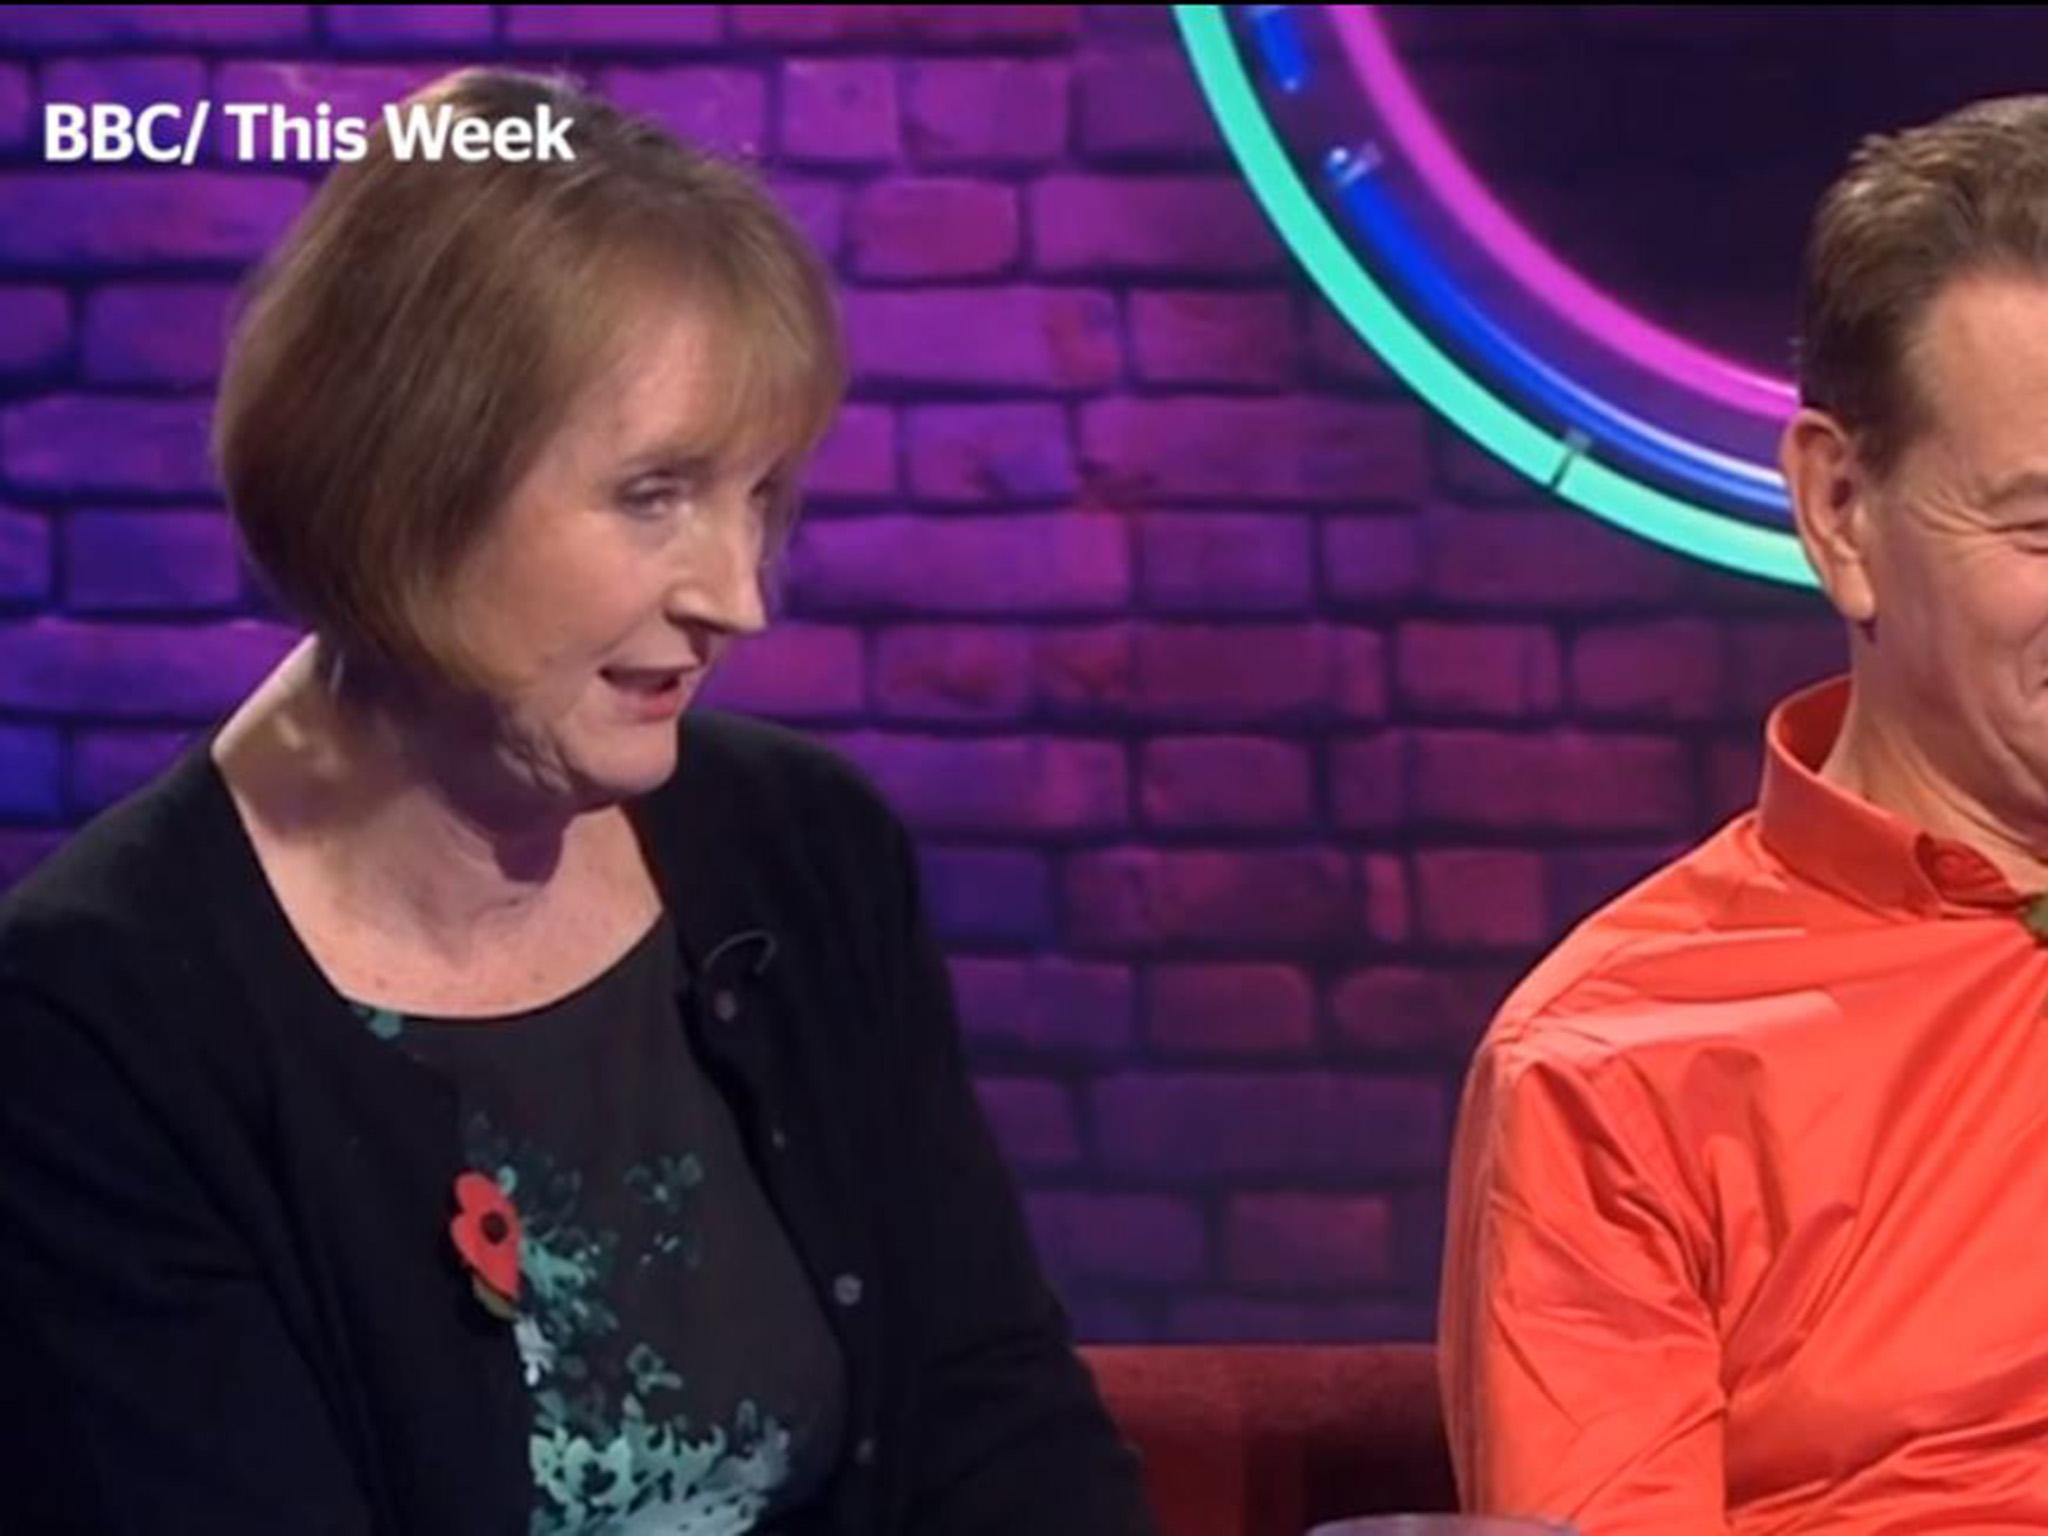 The awkward moment Harriet Harman accused a BBC presenter of finding antisemitism funny